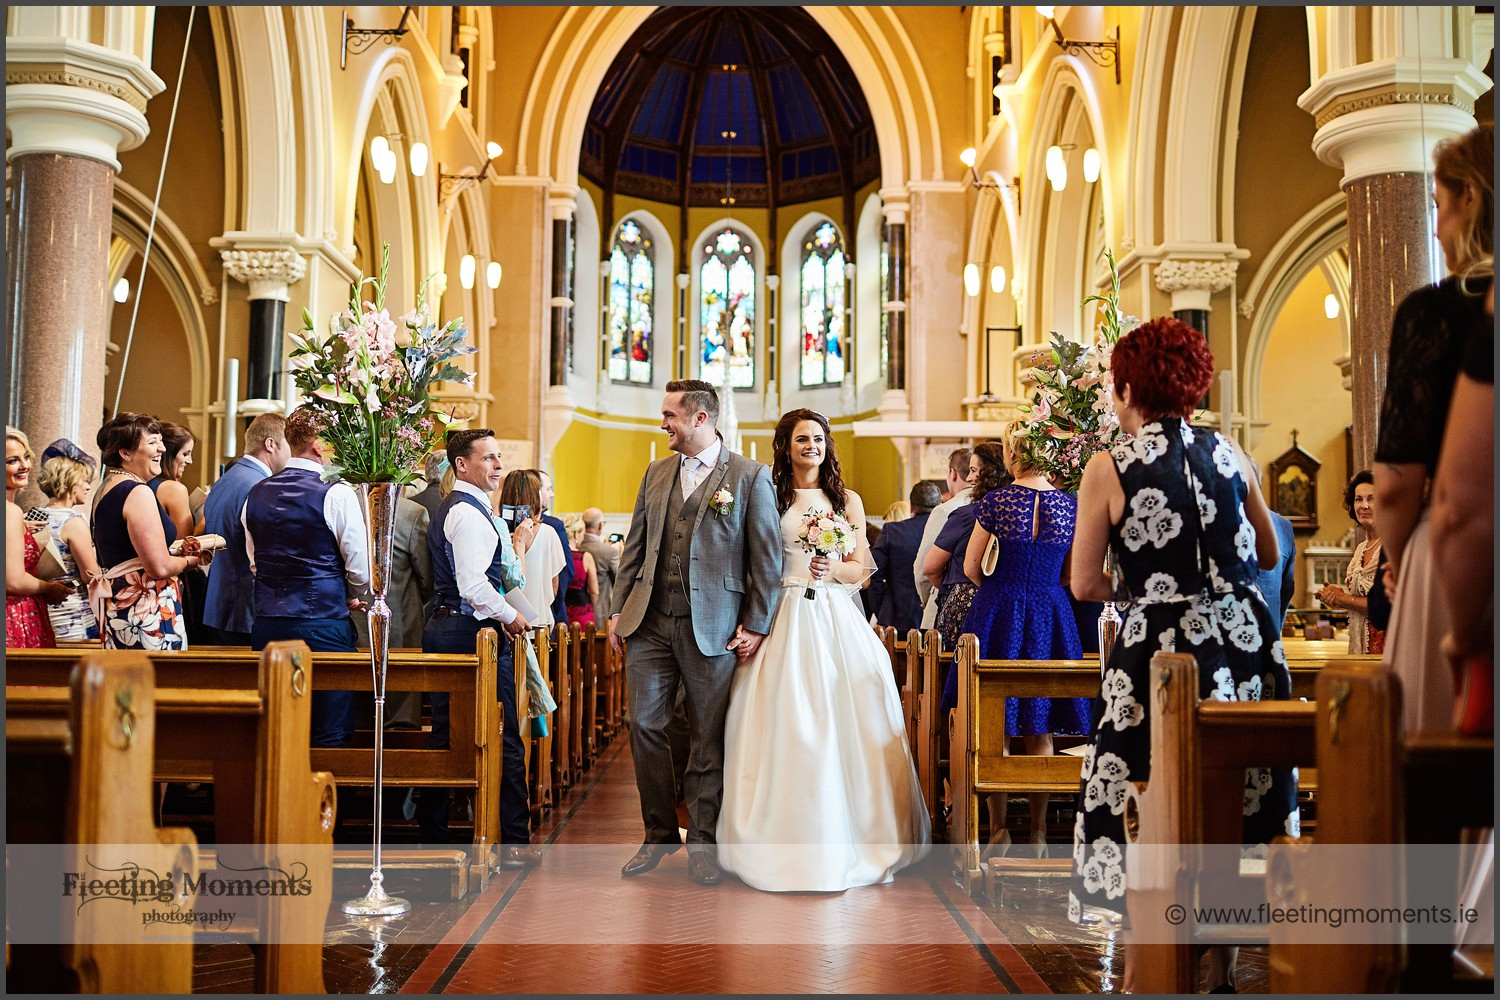 wedding-photographers-carlow-at-step-house-hotel-in-borris-40